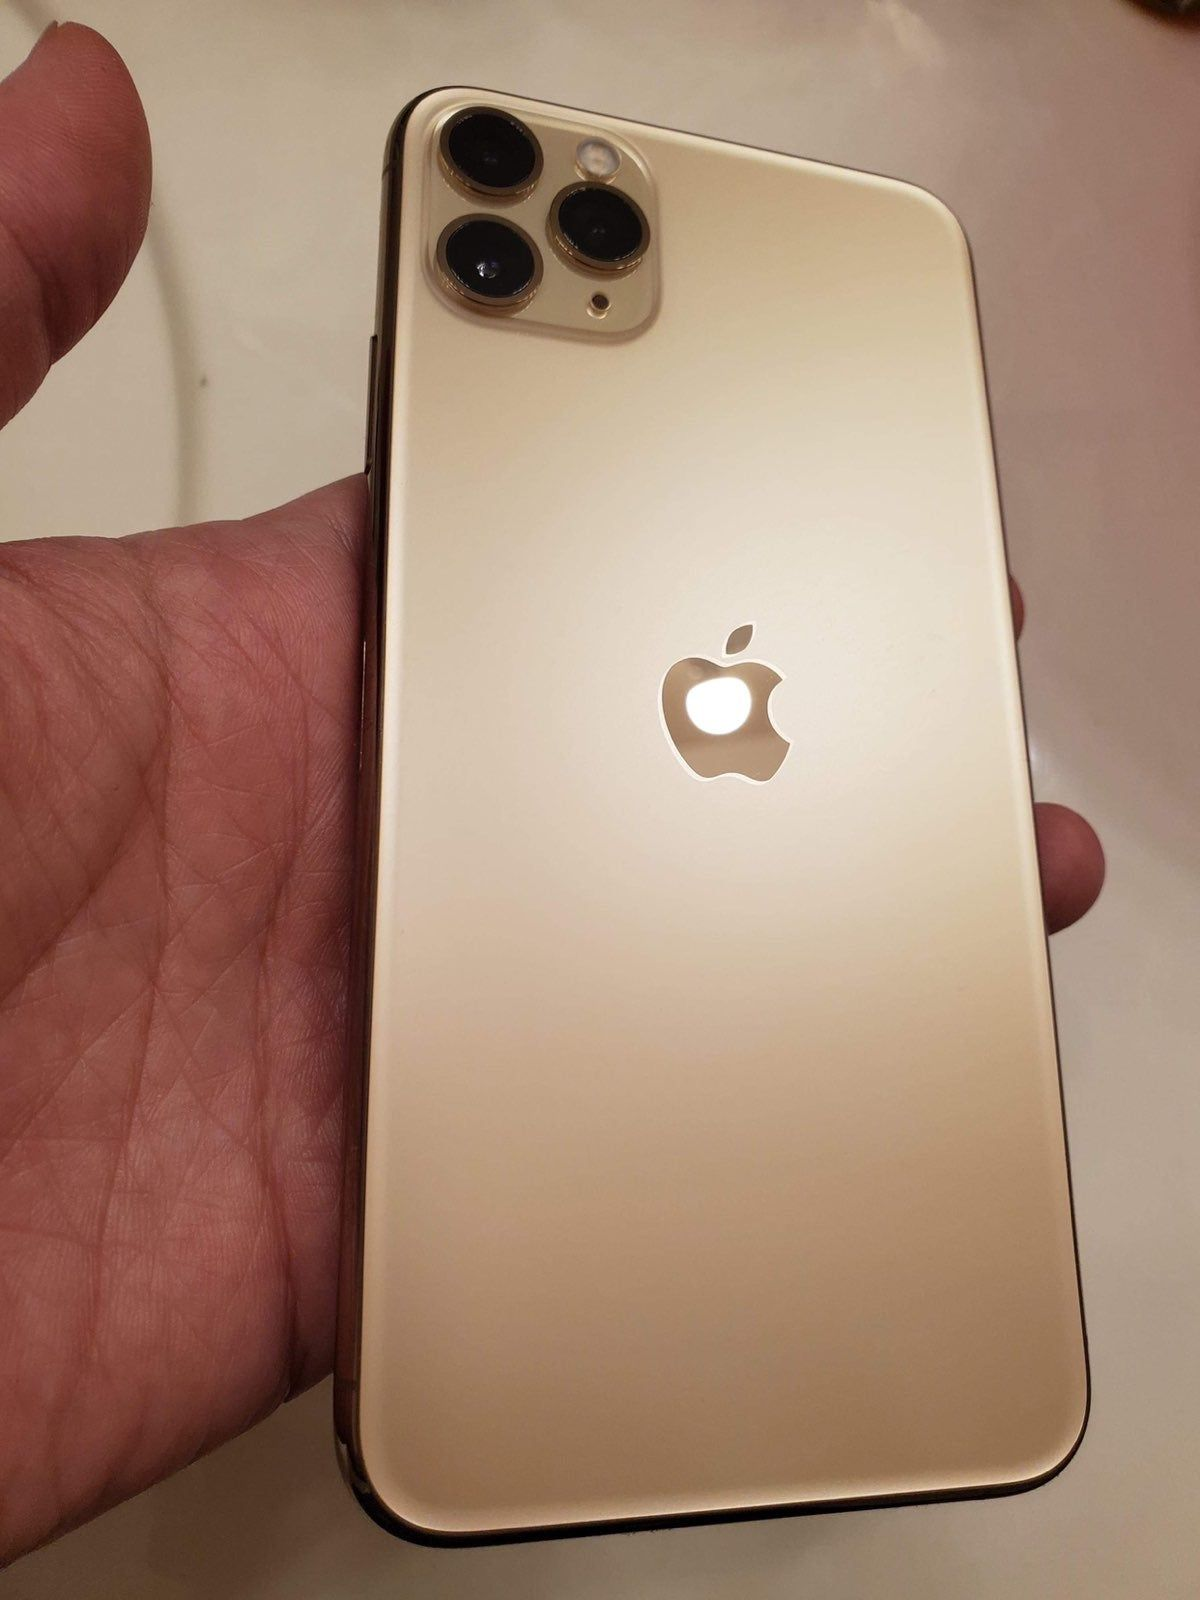 Iphone 11 Pro Max Gold 512 Gb Unlocked In 2020 Gold Iphone Iphone Apple Watch Iphone